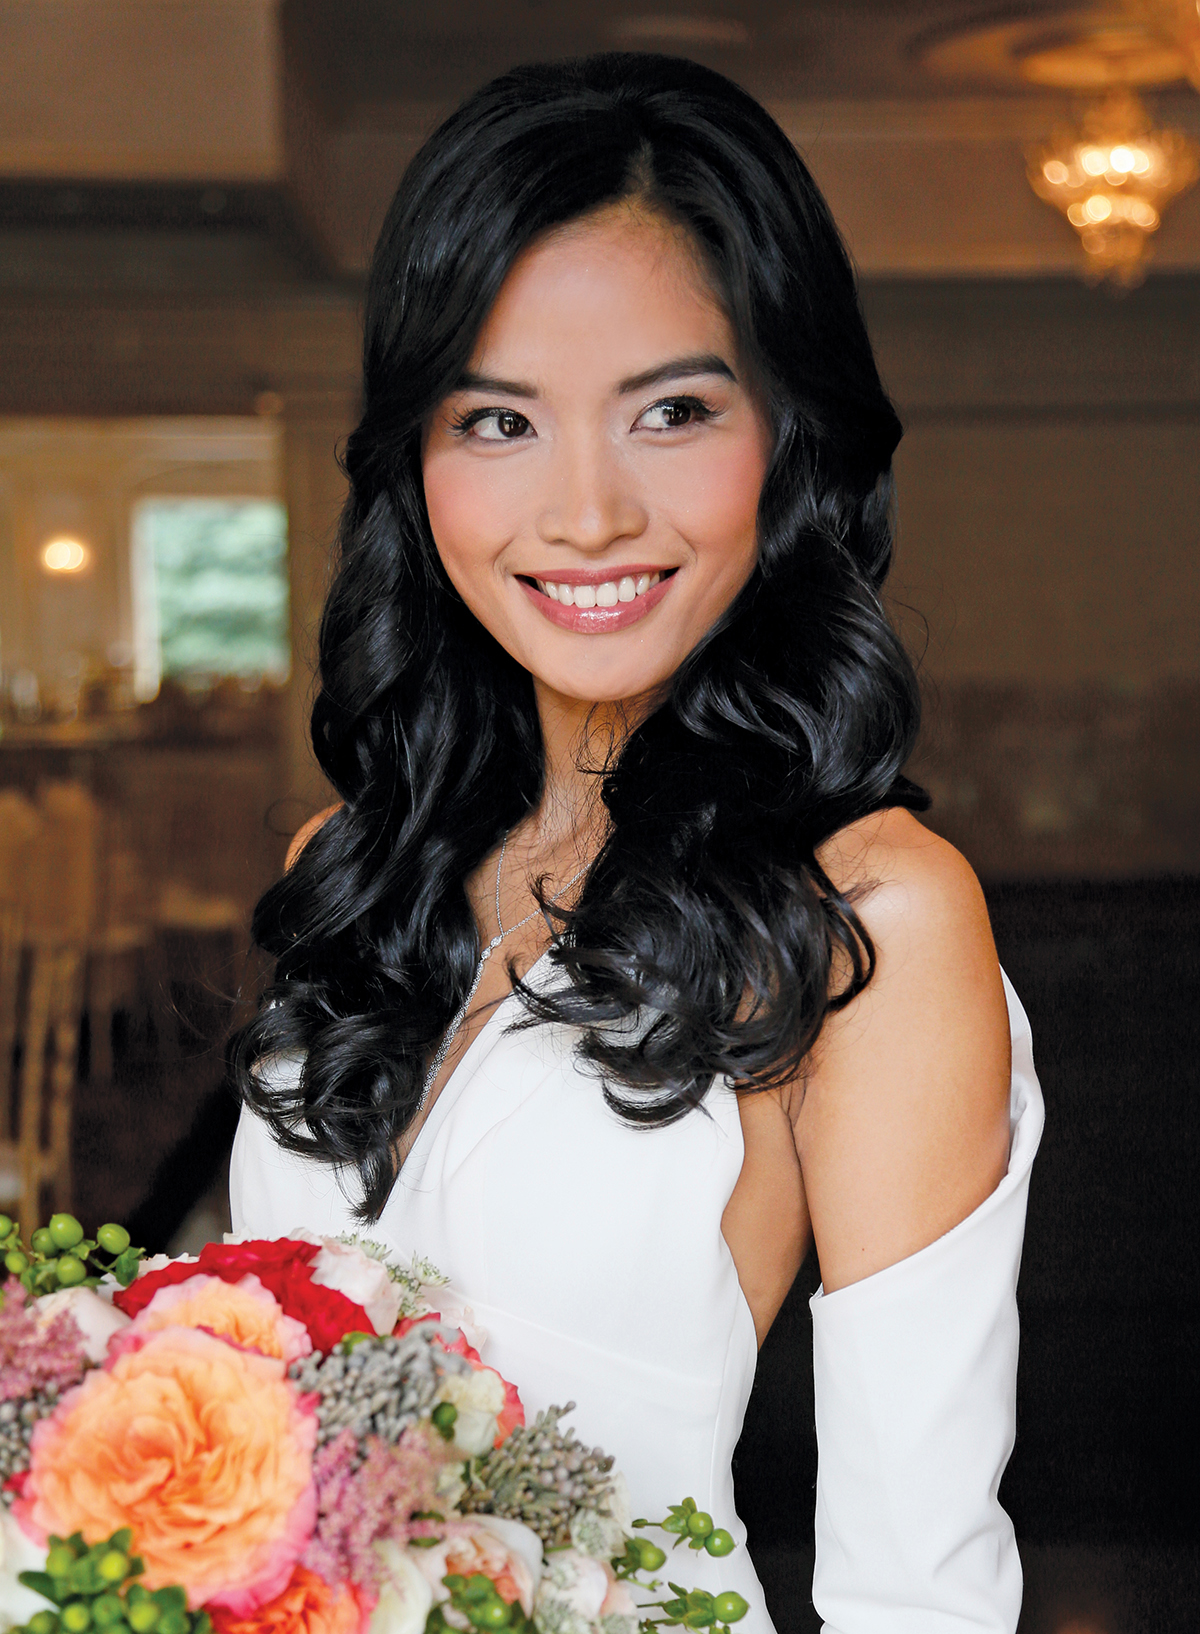 Outdoor Wedding Bridal Looks By Ashimoto Essential Beauty